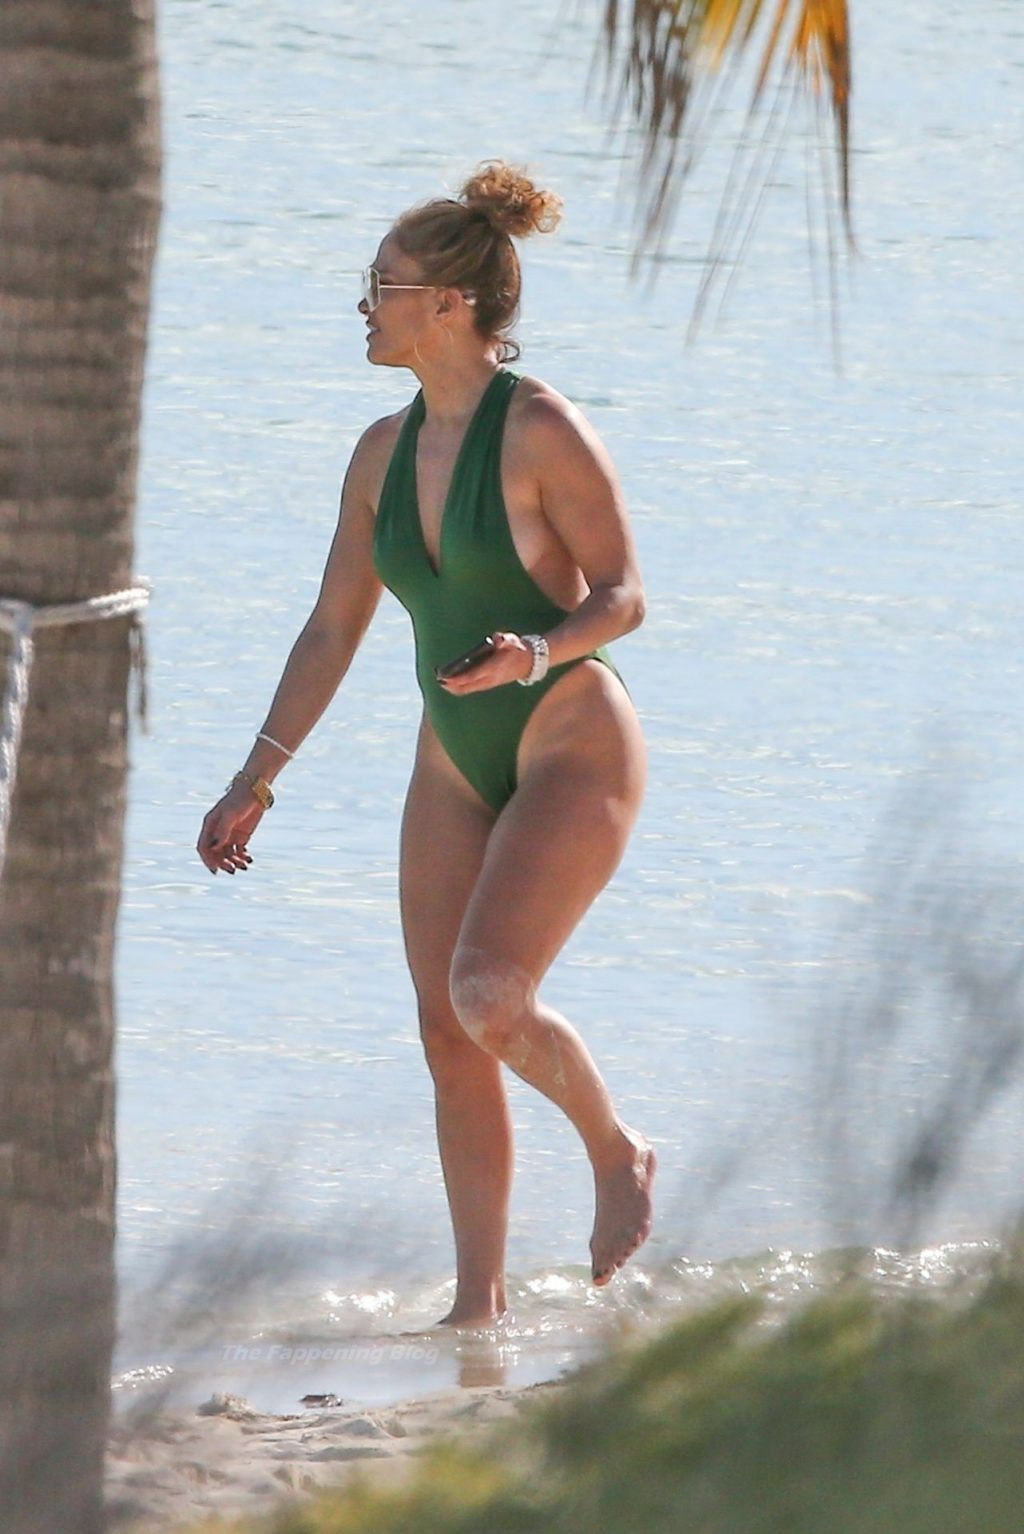 Jennifer Lopez is Pictured in a Green Swimsuit as She Soaks in the Sun in Turks and Caicos (14 Photos)